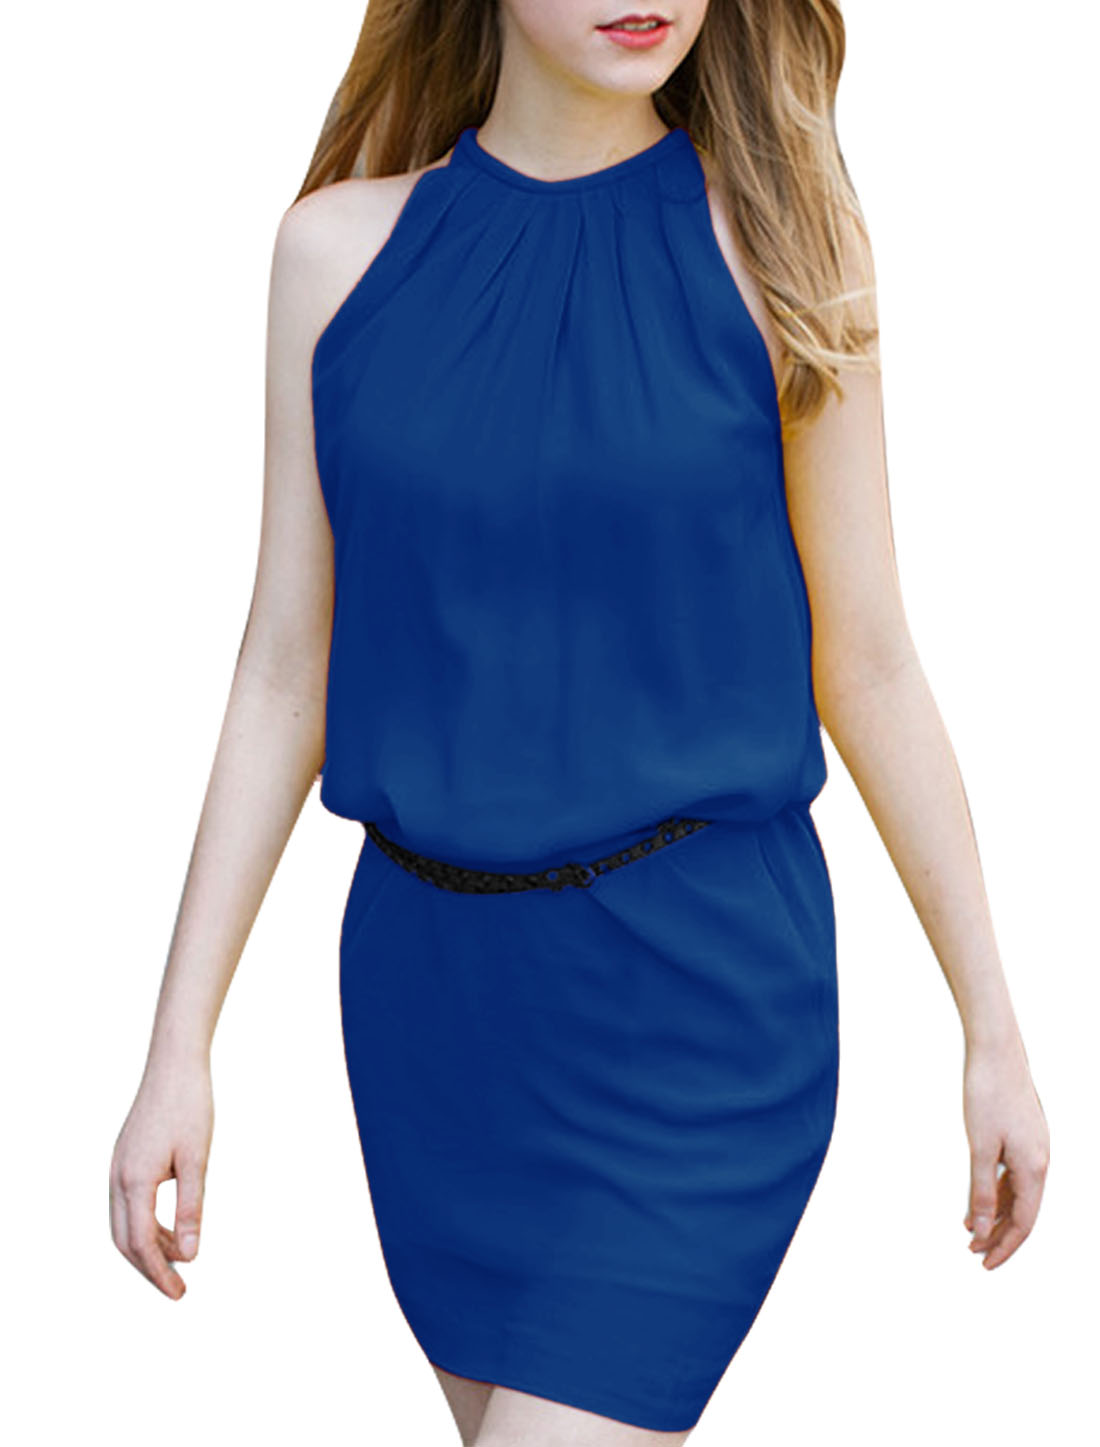 Women Sleeveless Ruched Detail Dress Royal Blue L